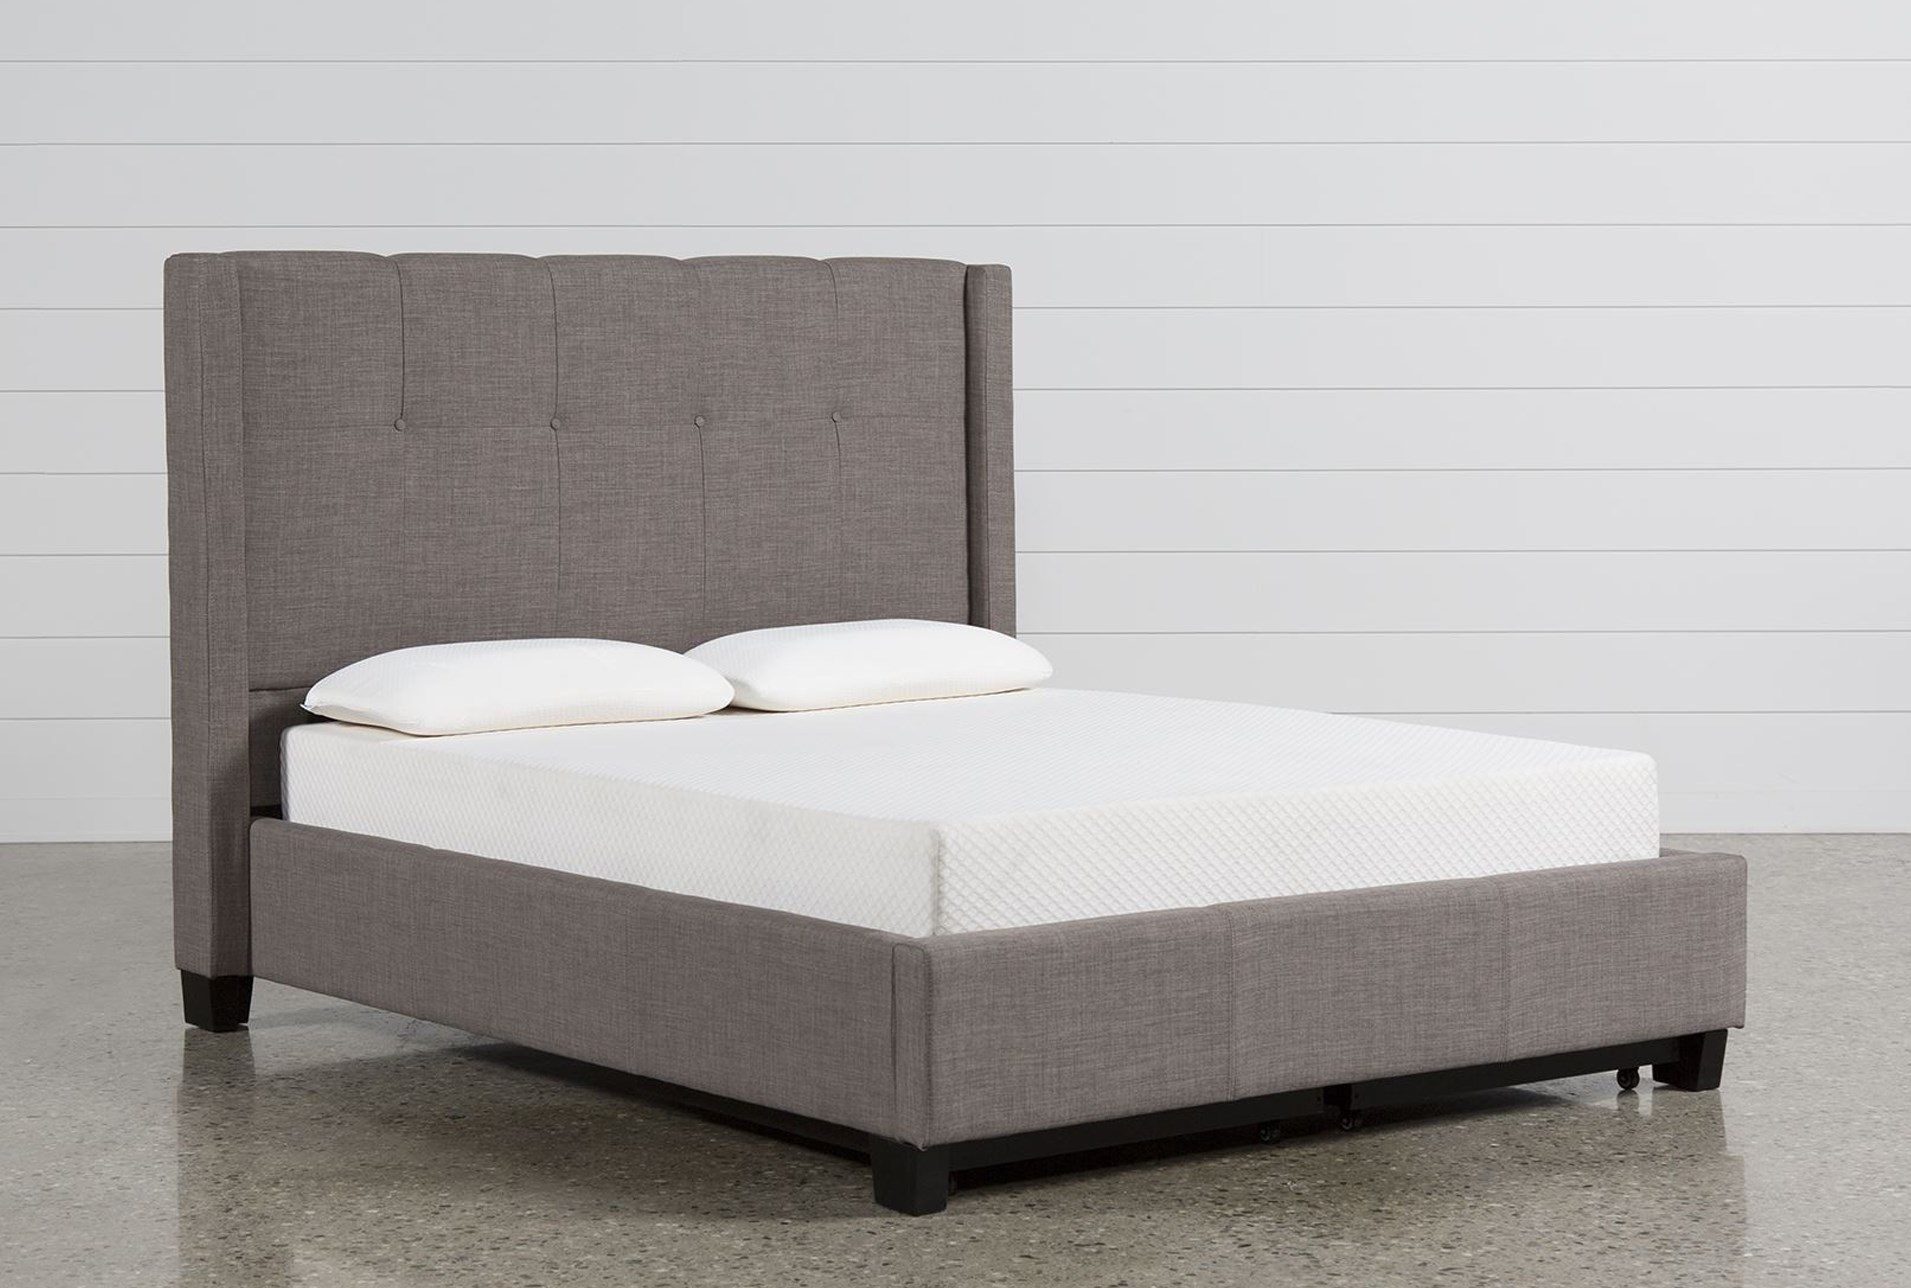 Damon Stone Full Upholstered Platform Bed W Storage Qty 1 Has Been Successfully Added To Your Cart